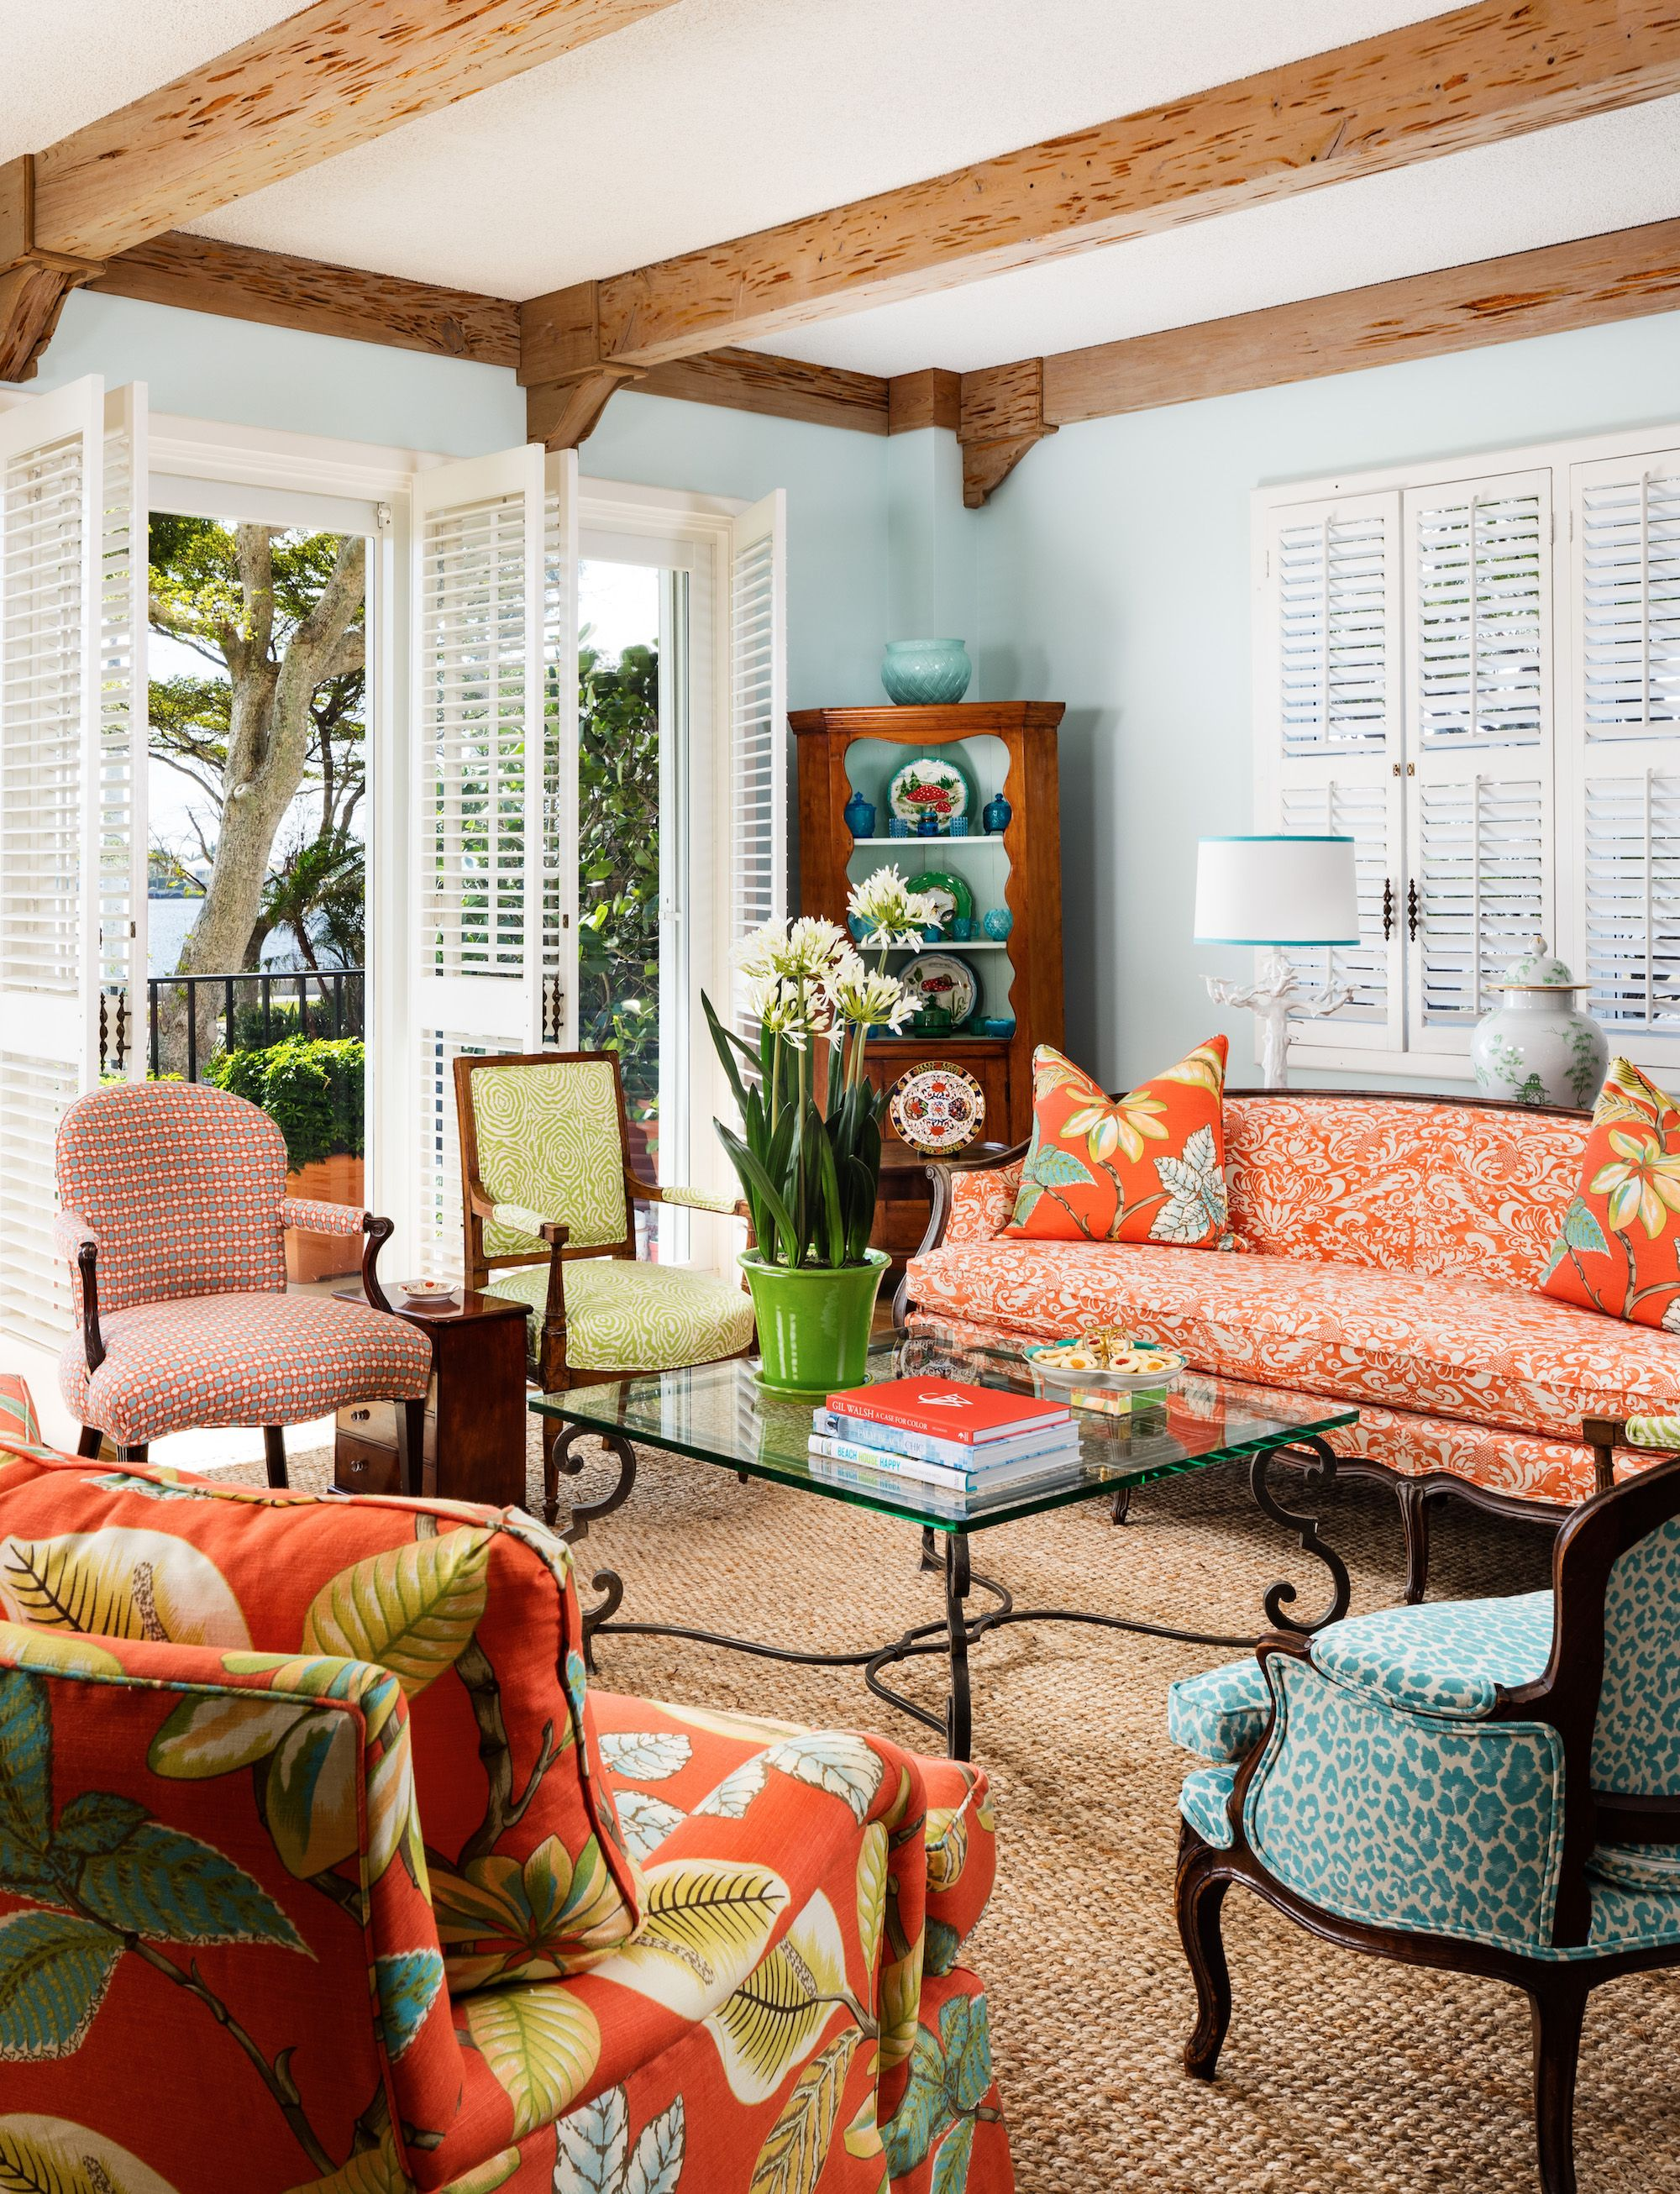 This Cheerful Living Room With Its Vibrant Prints Has Ample Seating For Guests And Looks Out Th Rustic Living Room Coastal Living Rooms Family Room Decorating #white #rustic #living #room #furniture